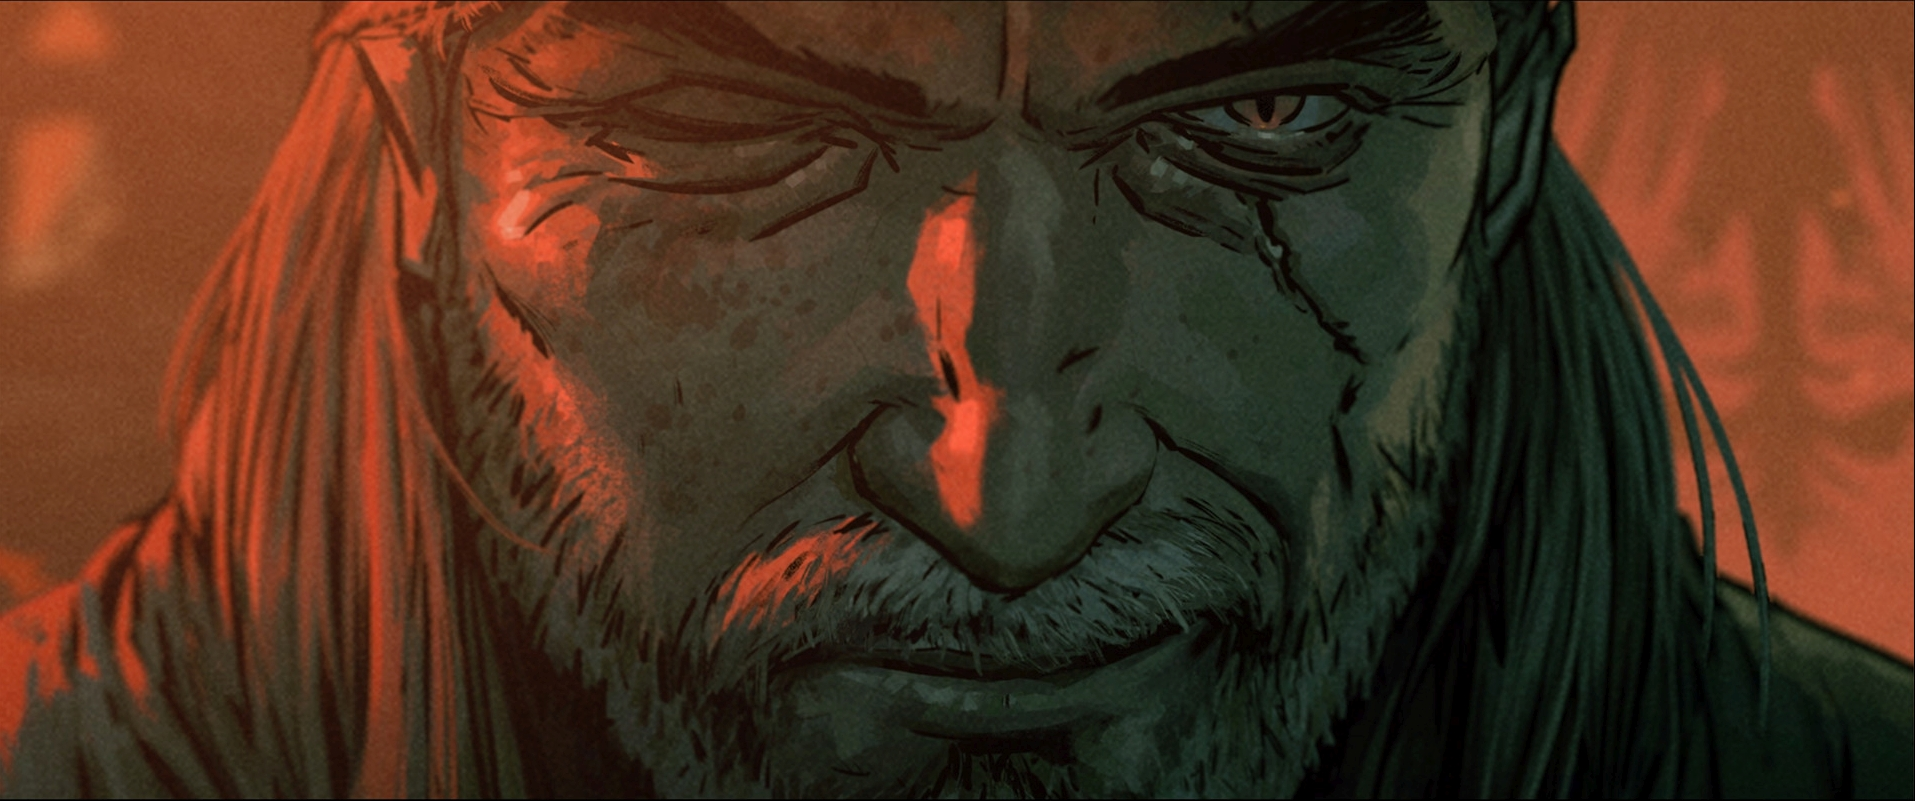 Thronebreaker: The Witcher Tales Released On Nintendo Switch But Don't Get Attached To The Spin-Off